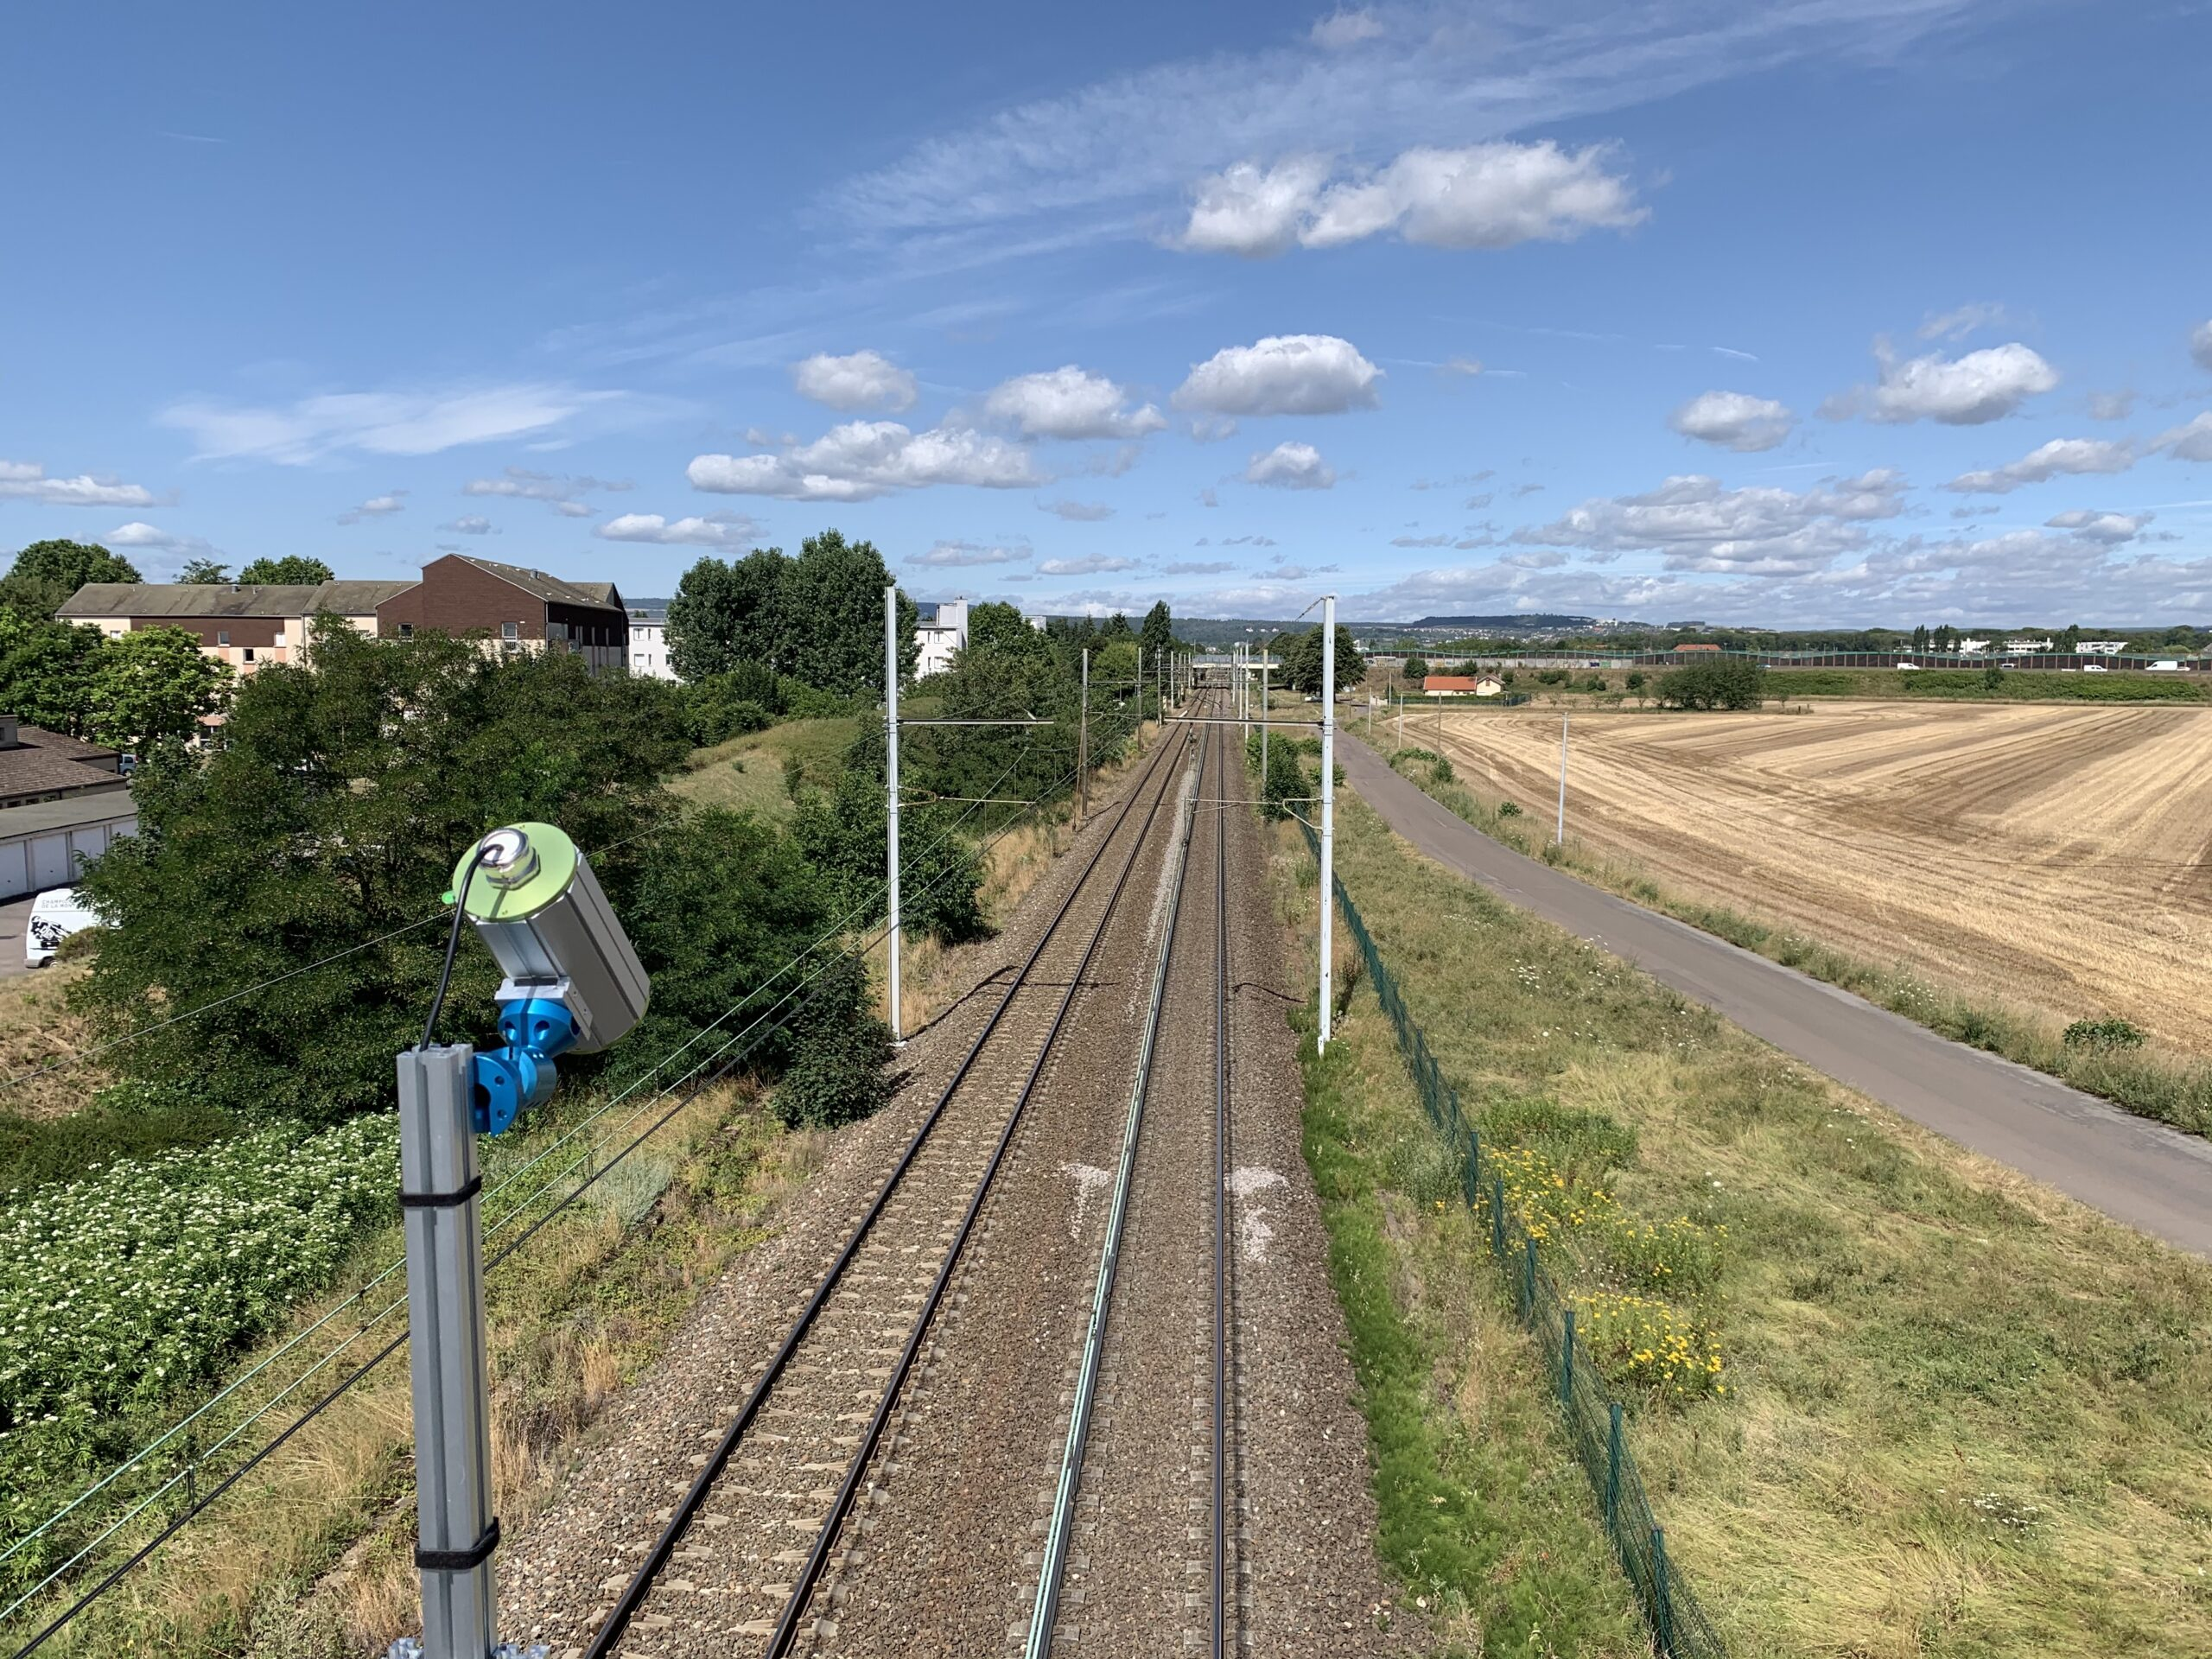 The Edge Computing Sensor is elevated at 45 degrees on a metal pole (adaptable to each station) in order to get 5 meters window view of the train. The E.C.S detects the train, identifies its registration and analyses the state of the train's pantographs.